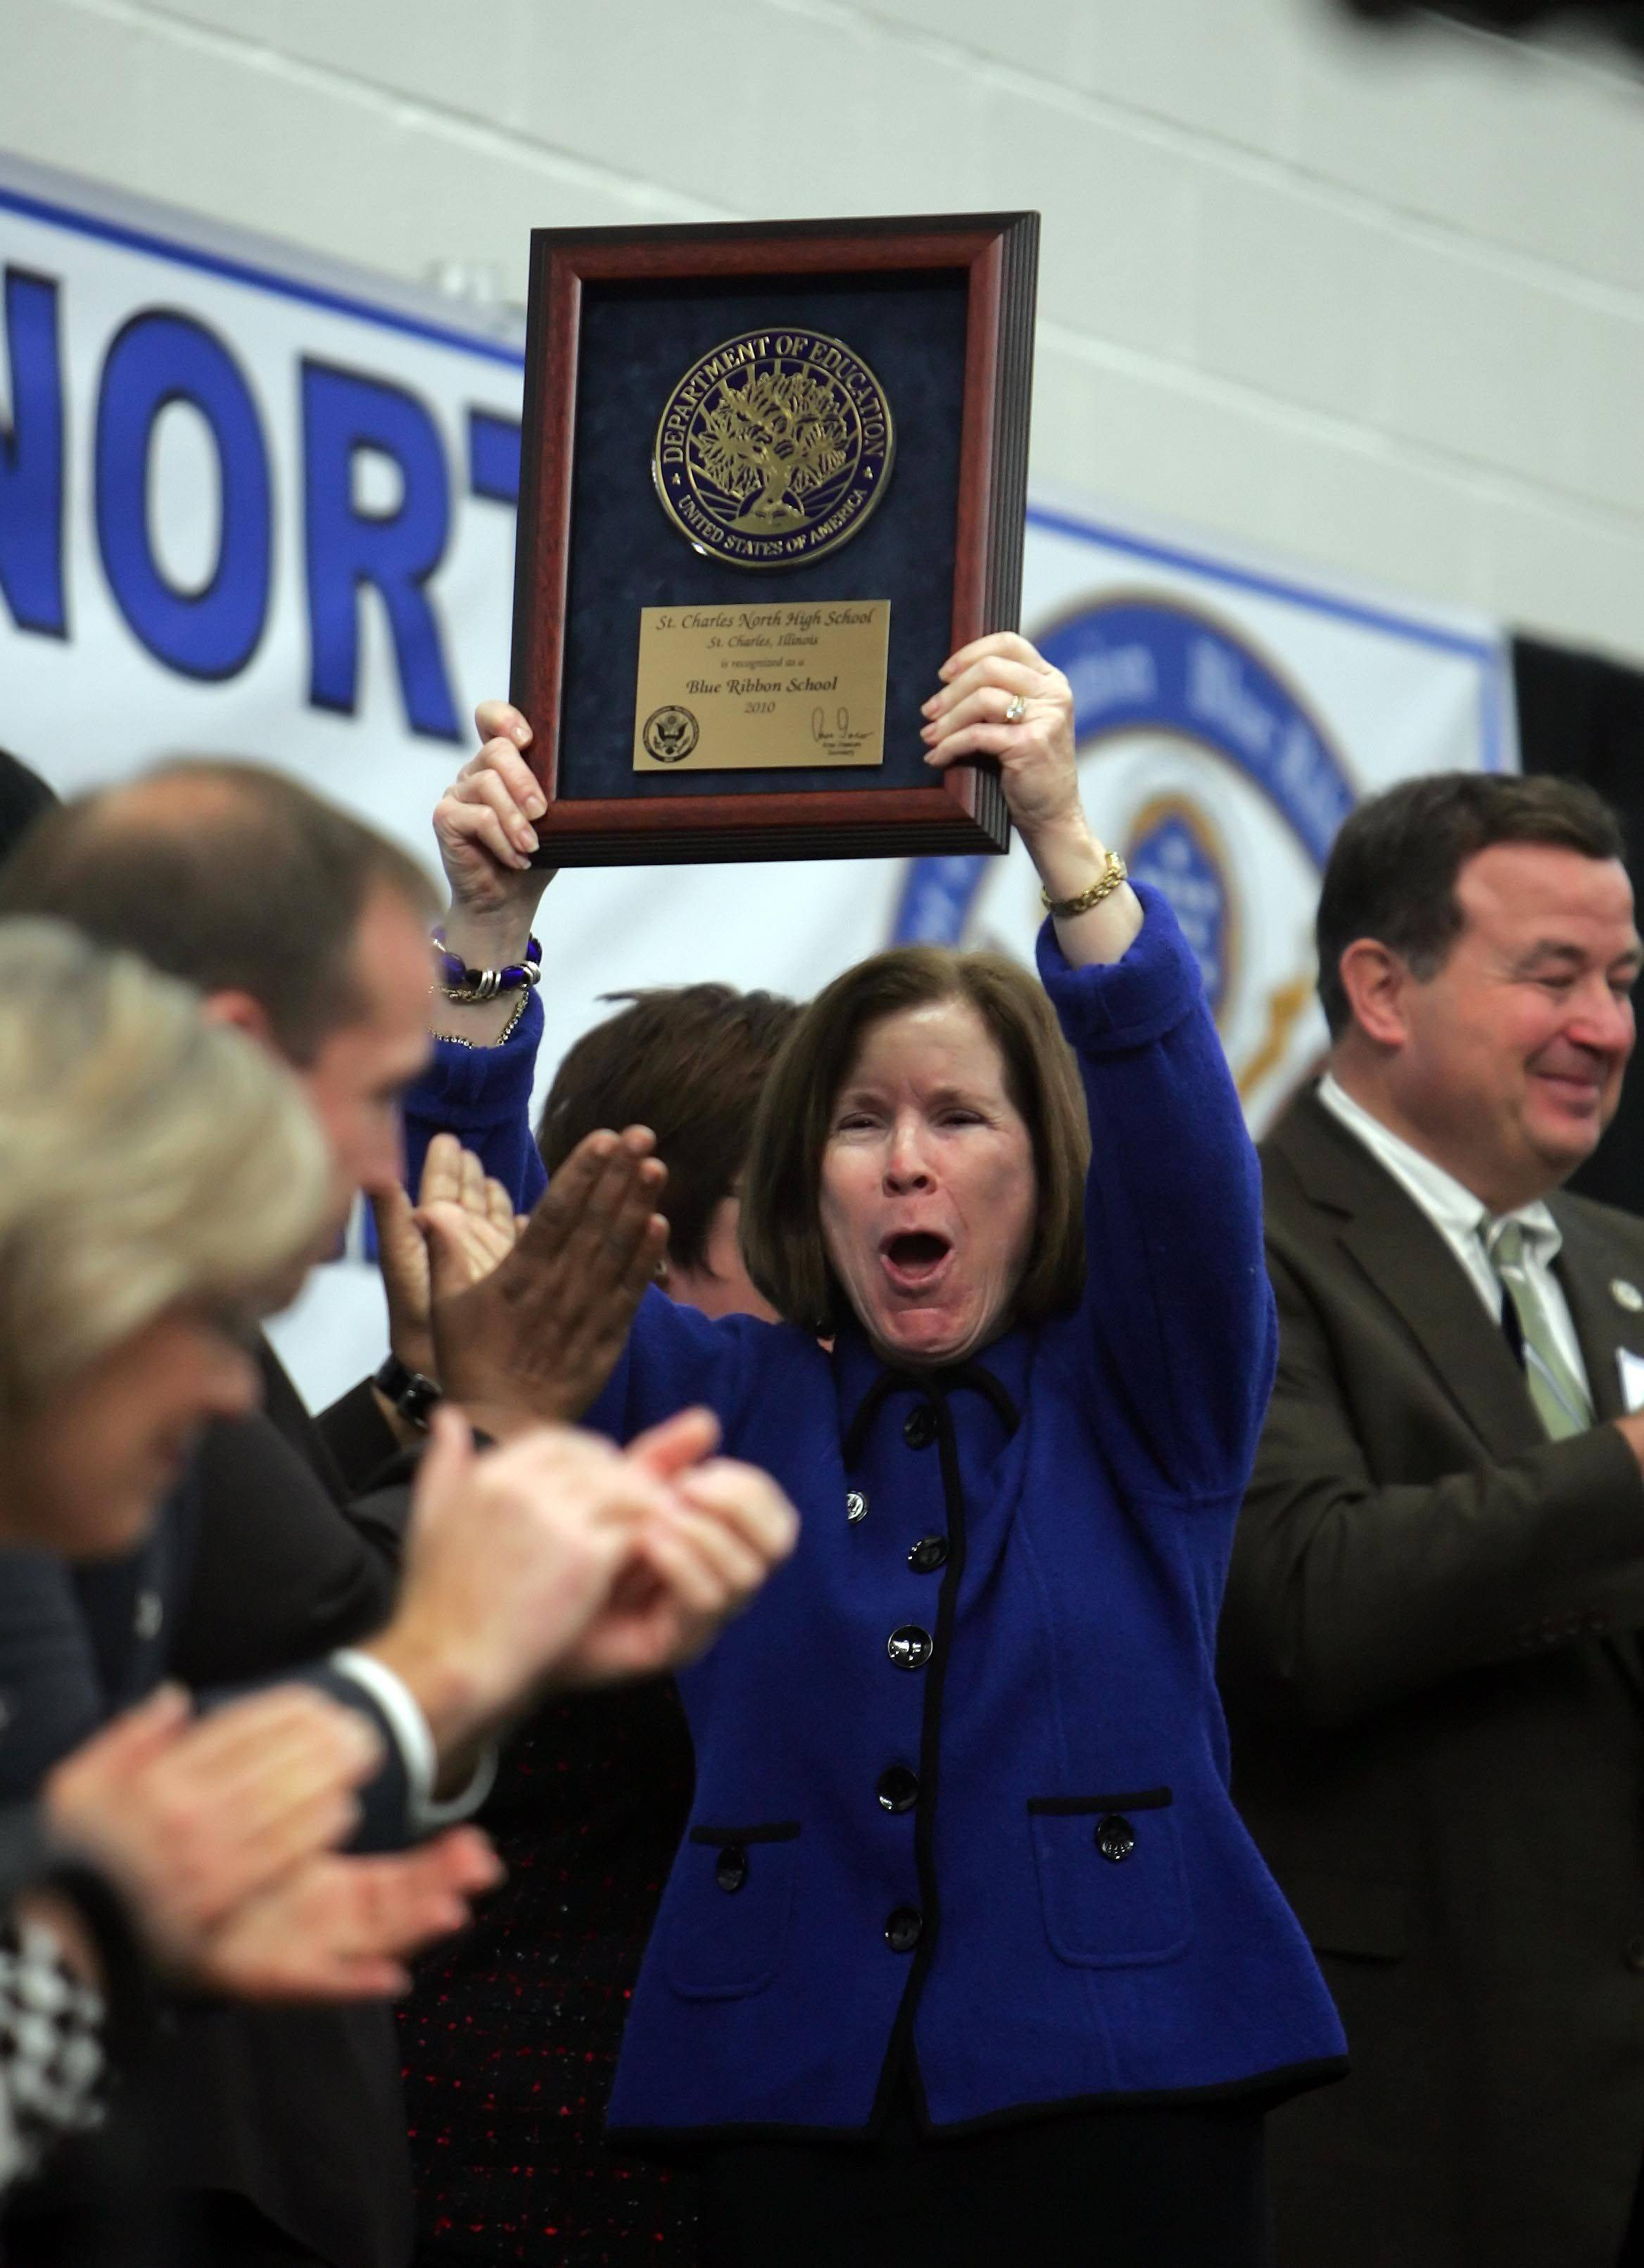 Biology teacher Janice Young holds up the plaque that St. Charles North High School received for the prestigious Blue Ribbon Award Thursday, December 2.